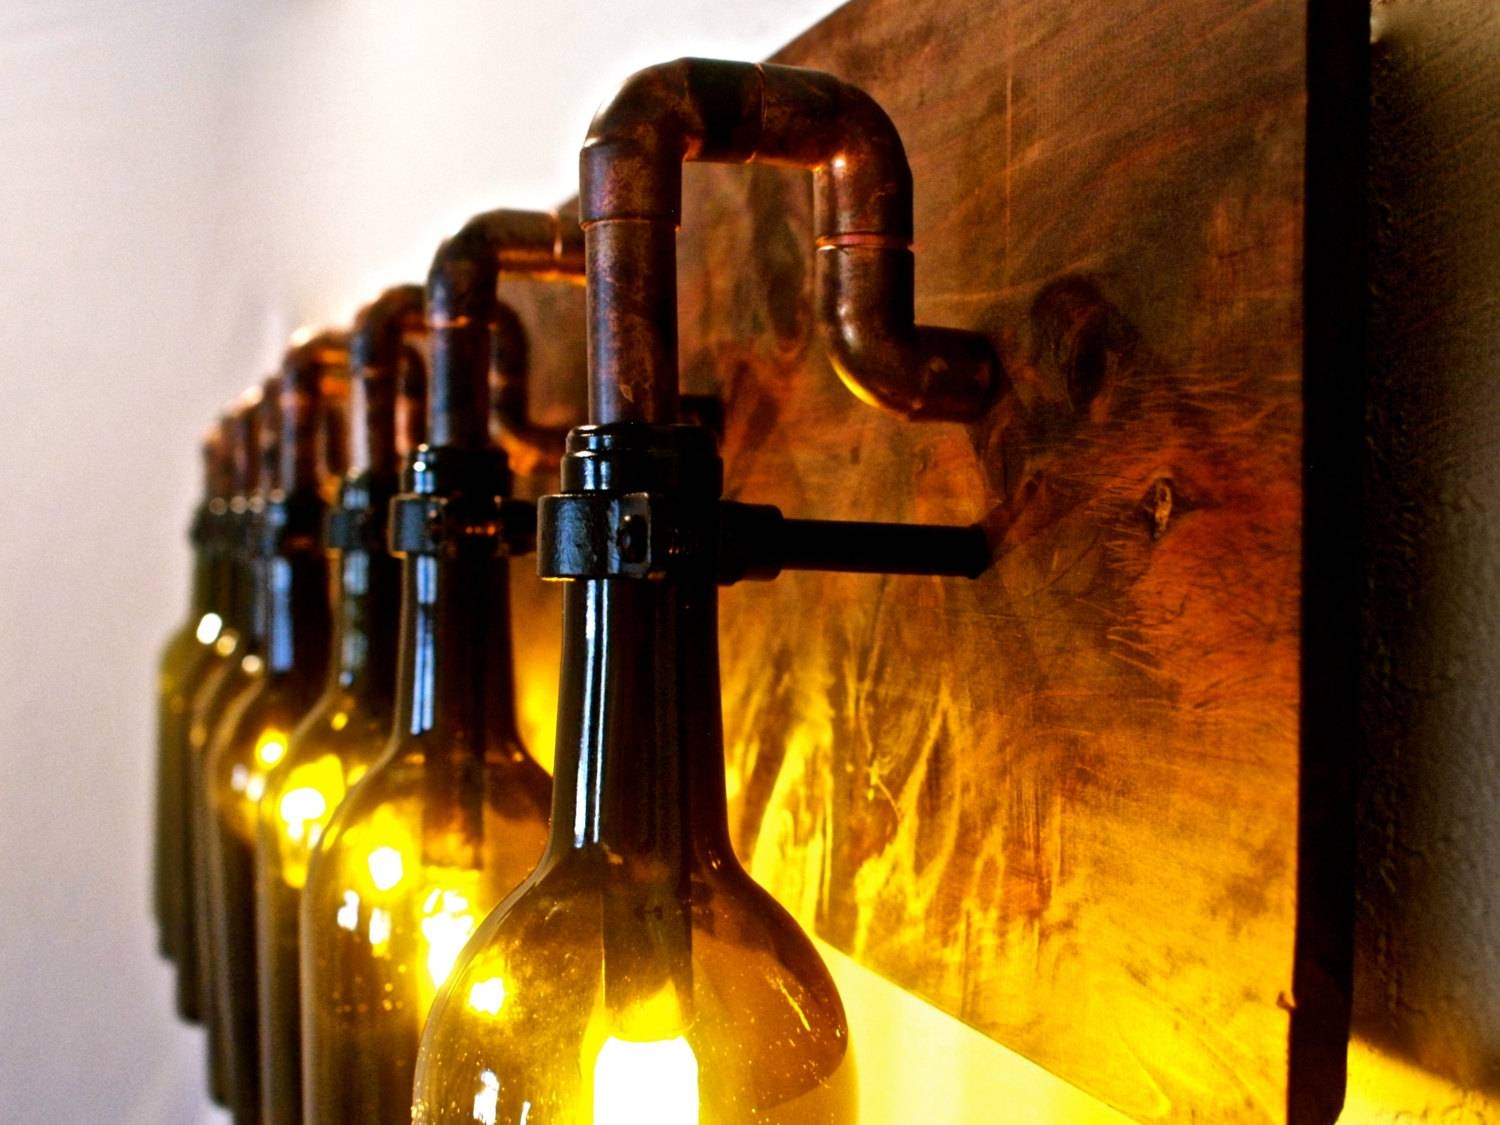 Kitchen. Charming Wine Bottle Light Fixture Bring Vintage Style pertaining to Wine Glass Lights Fixtures (Image 8 of 15)